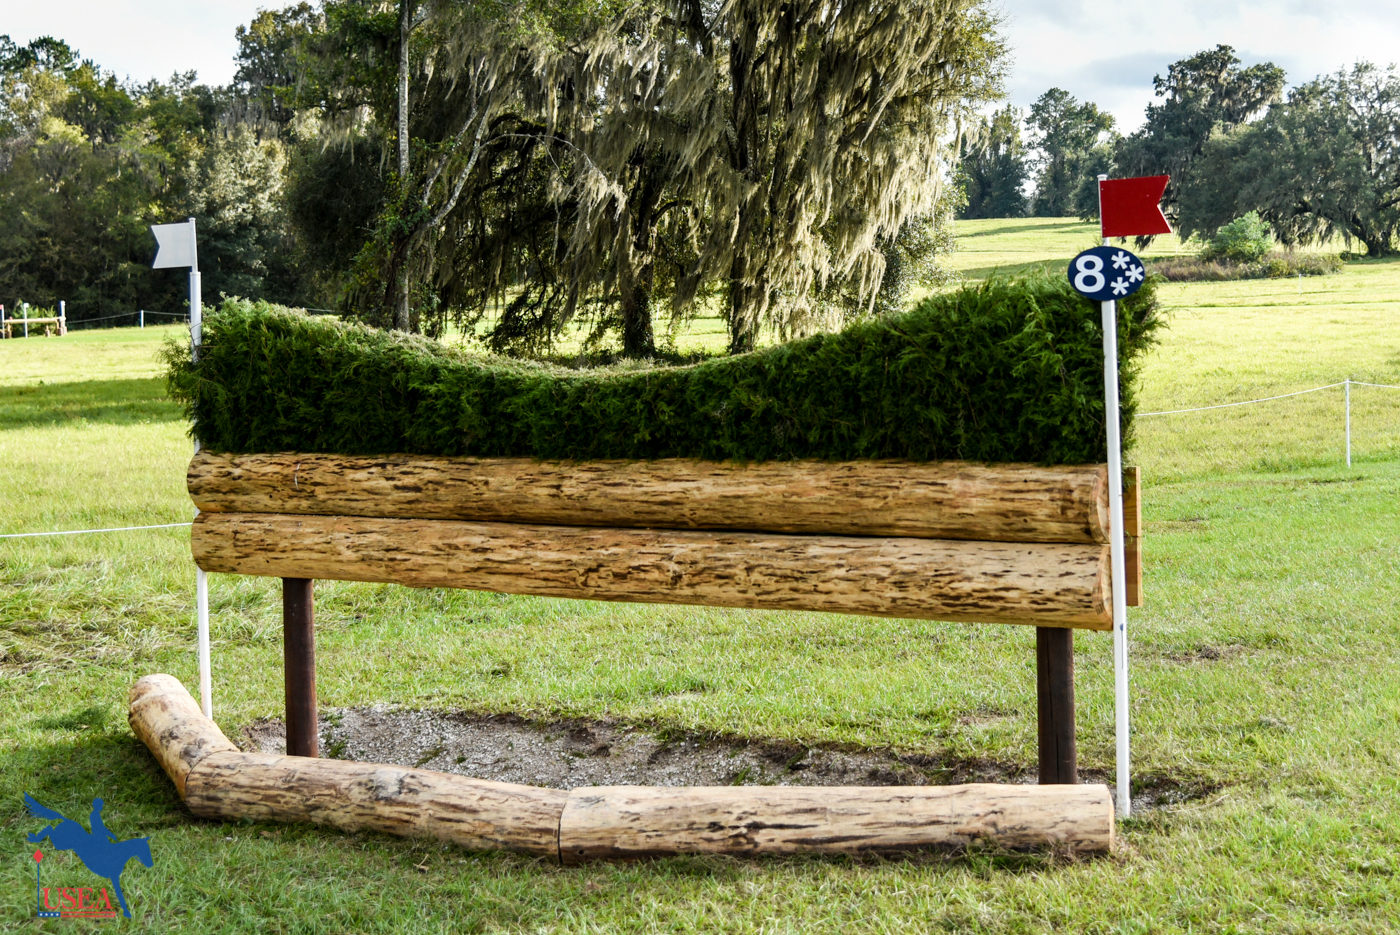 CCI - 8 - Ditch with Hedge